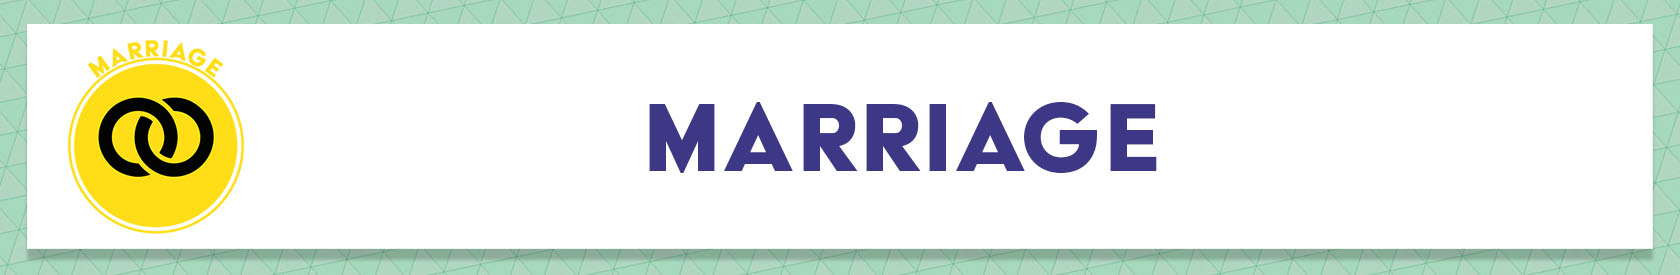 Resources: Marriage